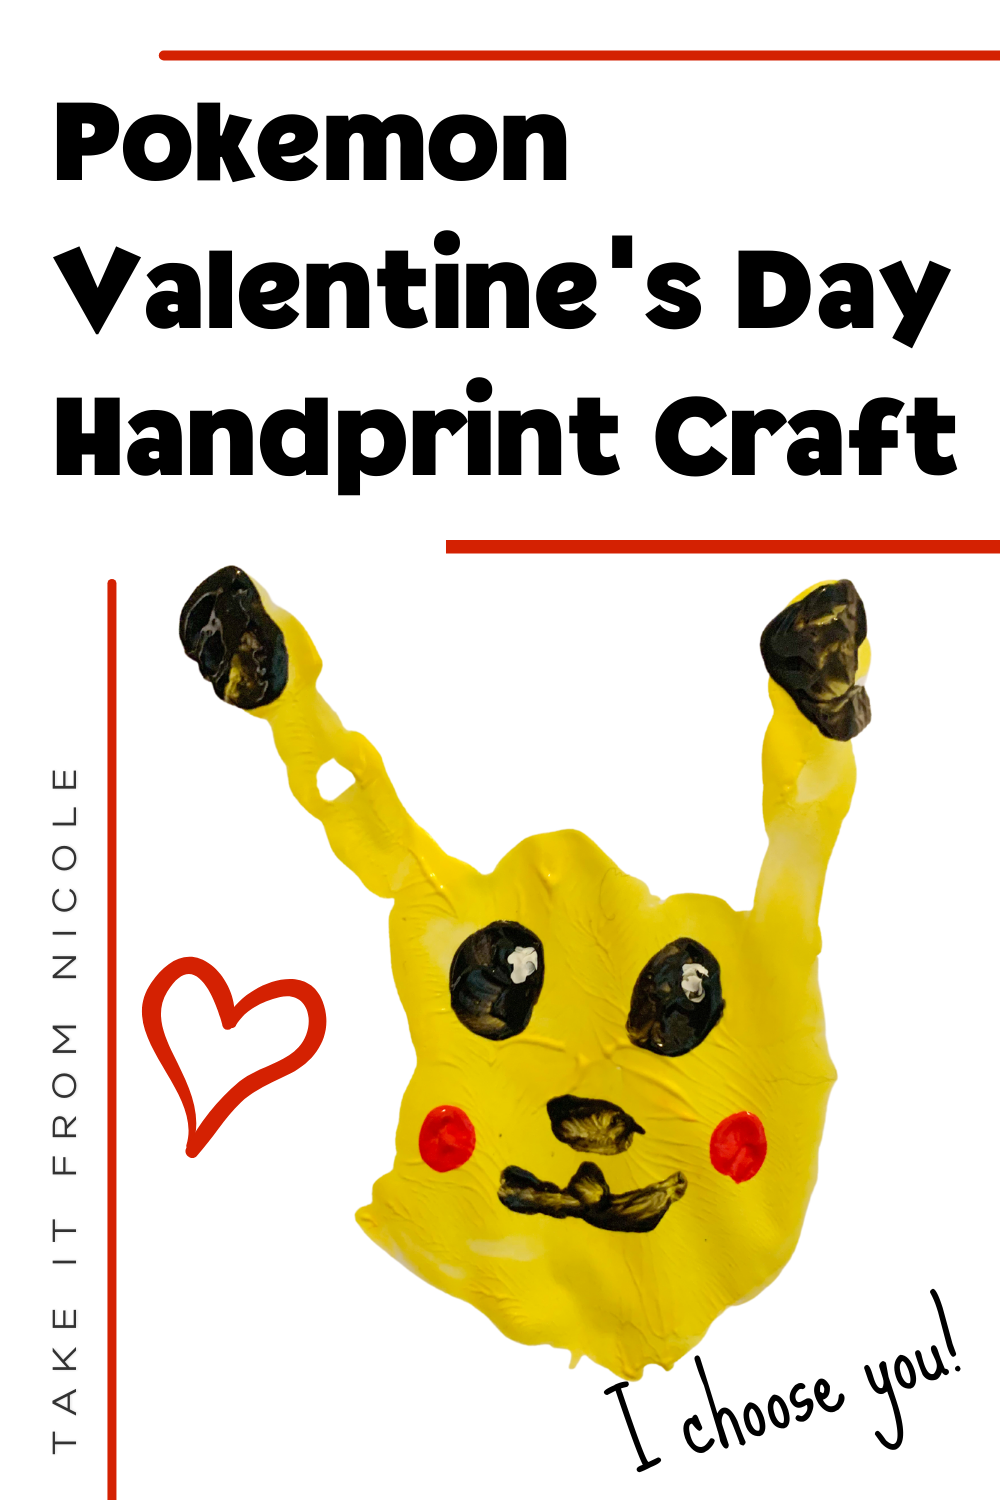 A Pokemon Valentine's Day handprint paint craft that is sure to be a crowd pleaser for both boys and girls. This cute little Pikachu is an easy and kid friendly activity for children.